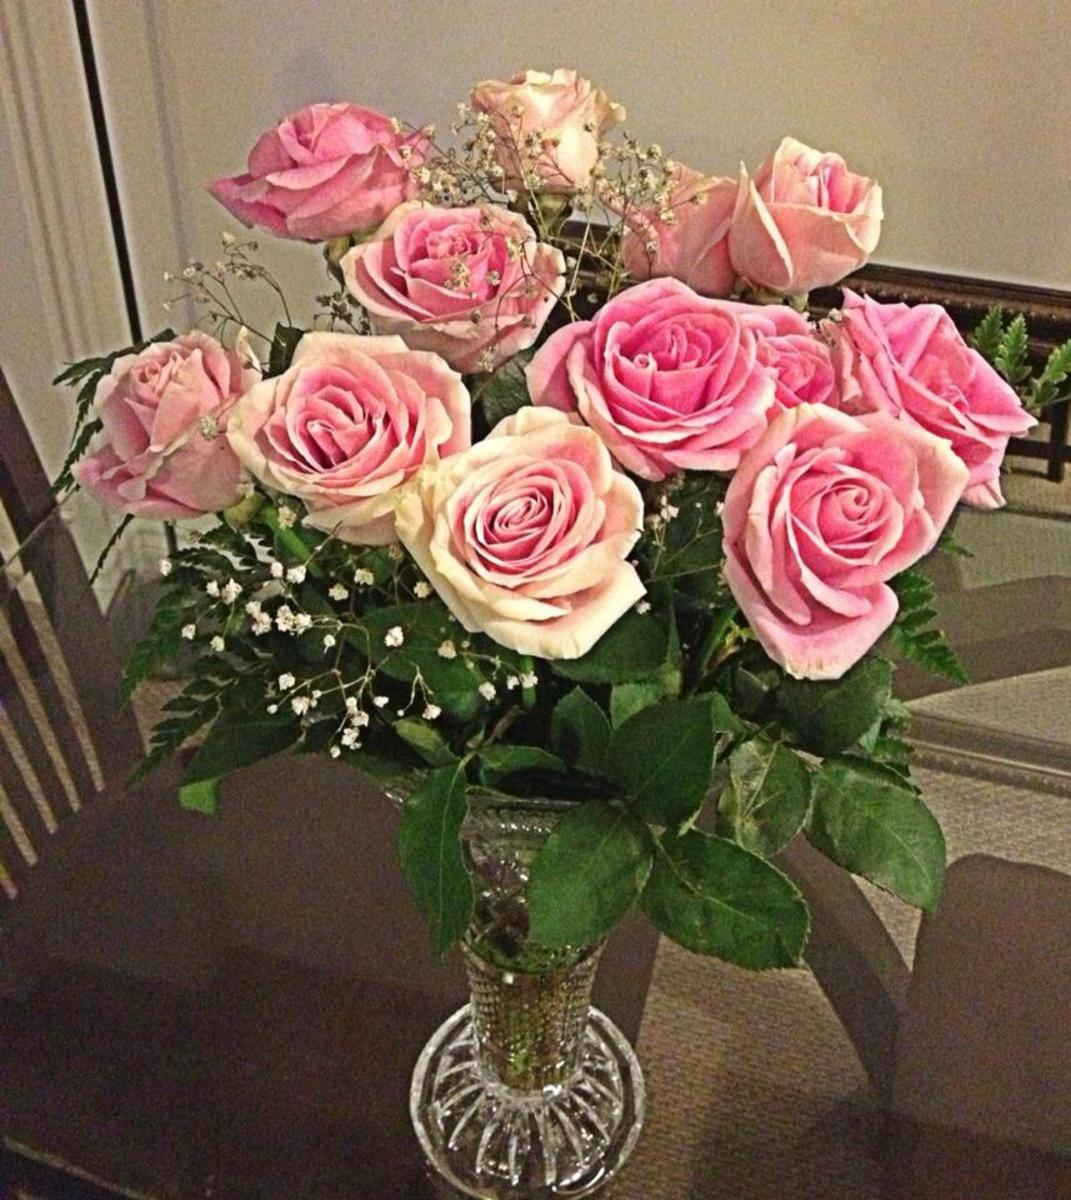 Pink Roses in Crystal Vase  - All Rights Reserved - Do Not Distribute -